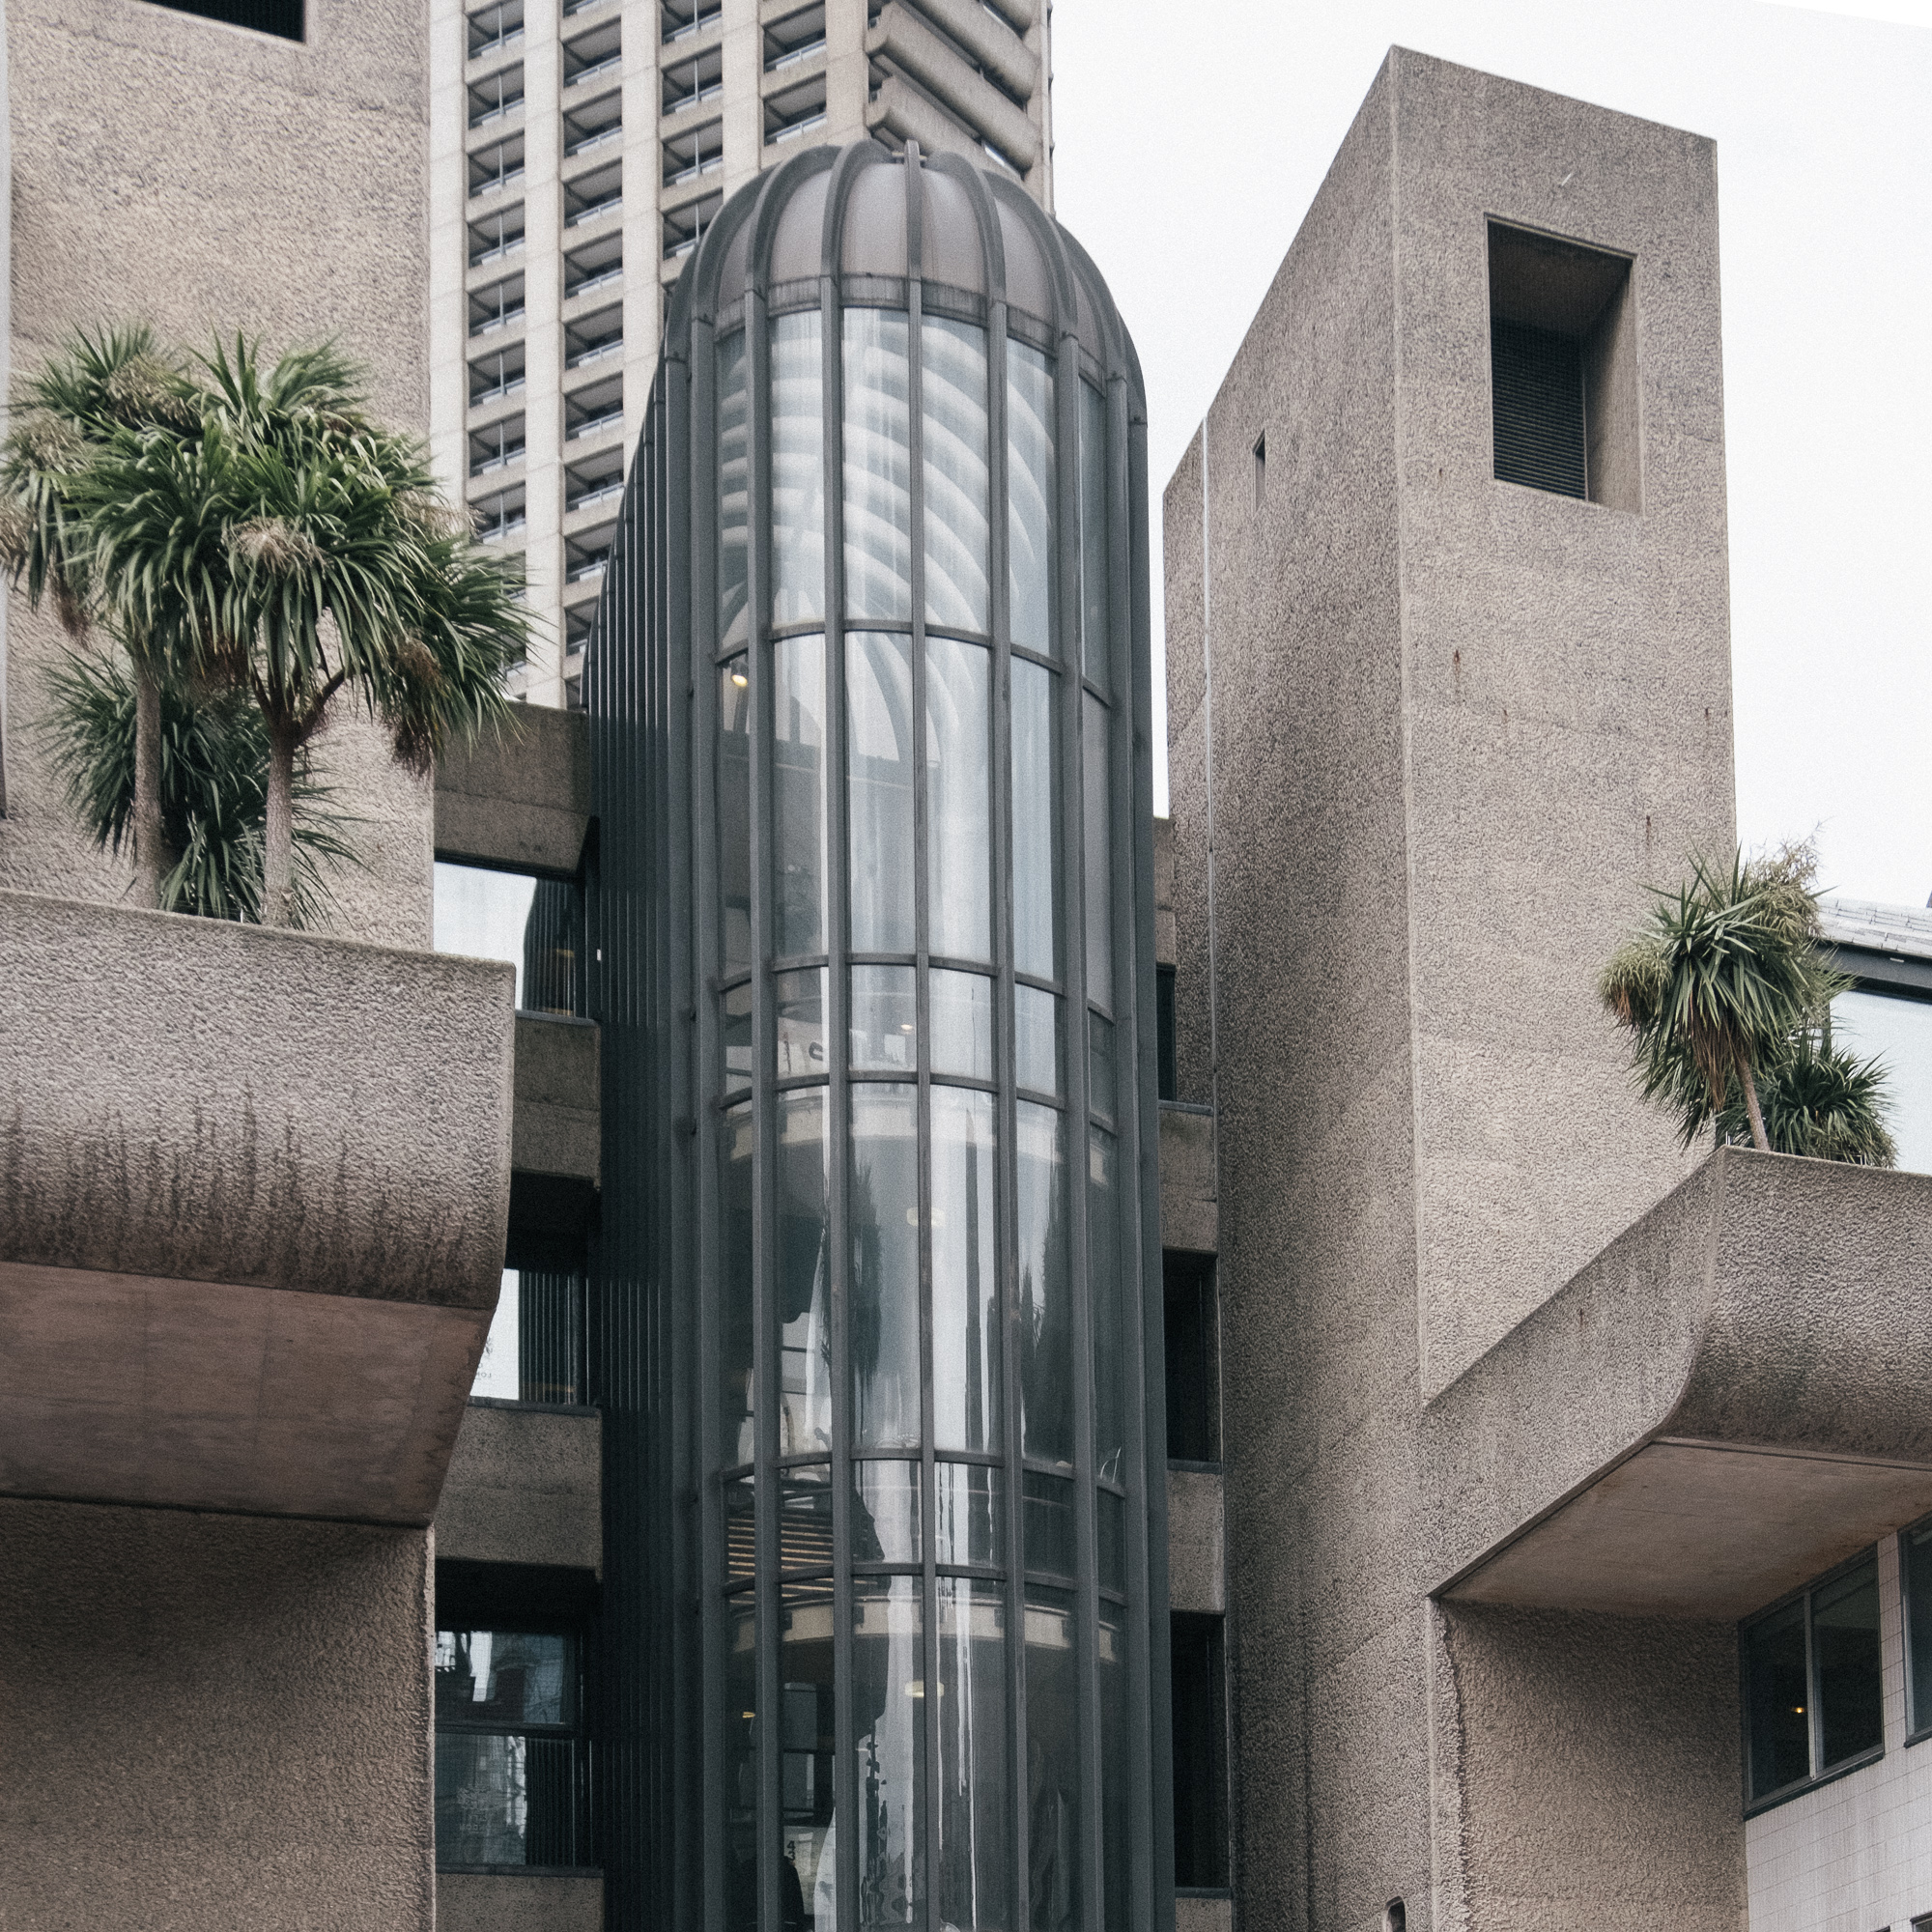 Barbican-brutal-and-beautiful-oasis-in-the-City-of-London-20.jpg